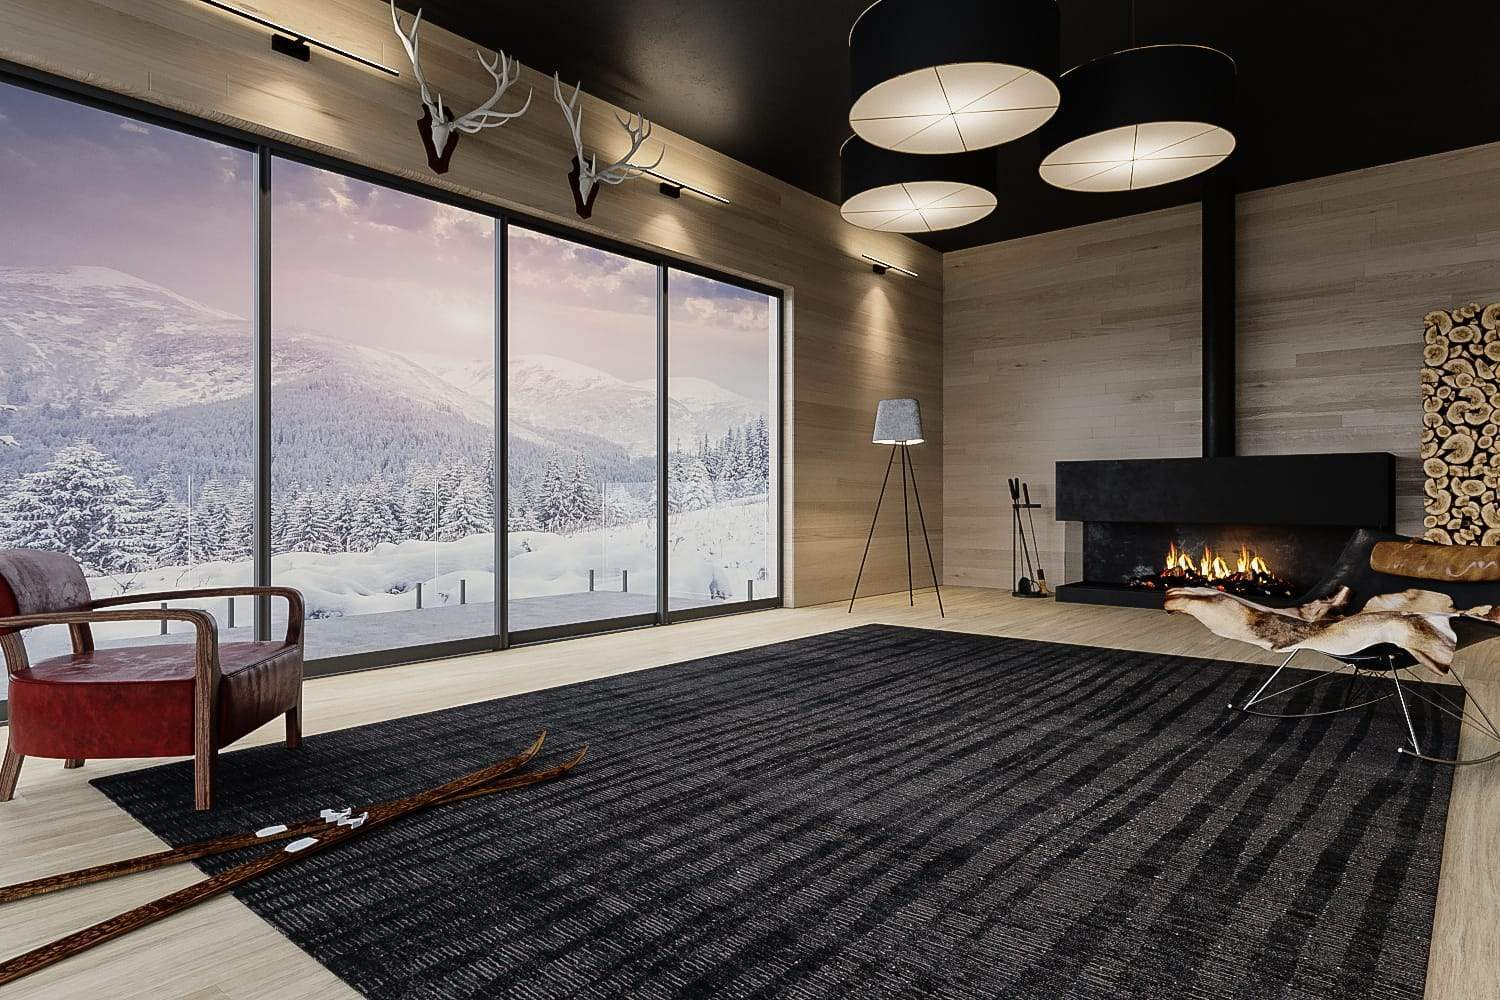 Installation shot of Rays Charcoal, a hand knotted rug designed by Tufenkian Artisan Carpets. room-image